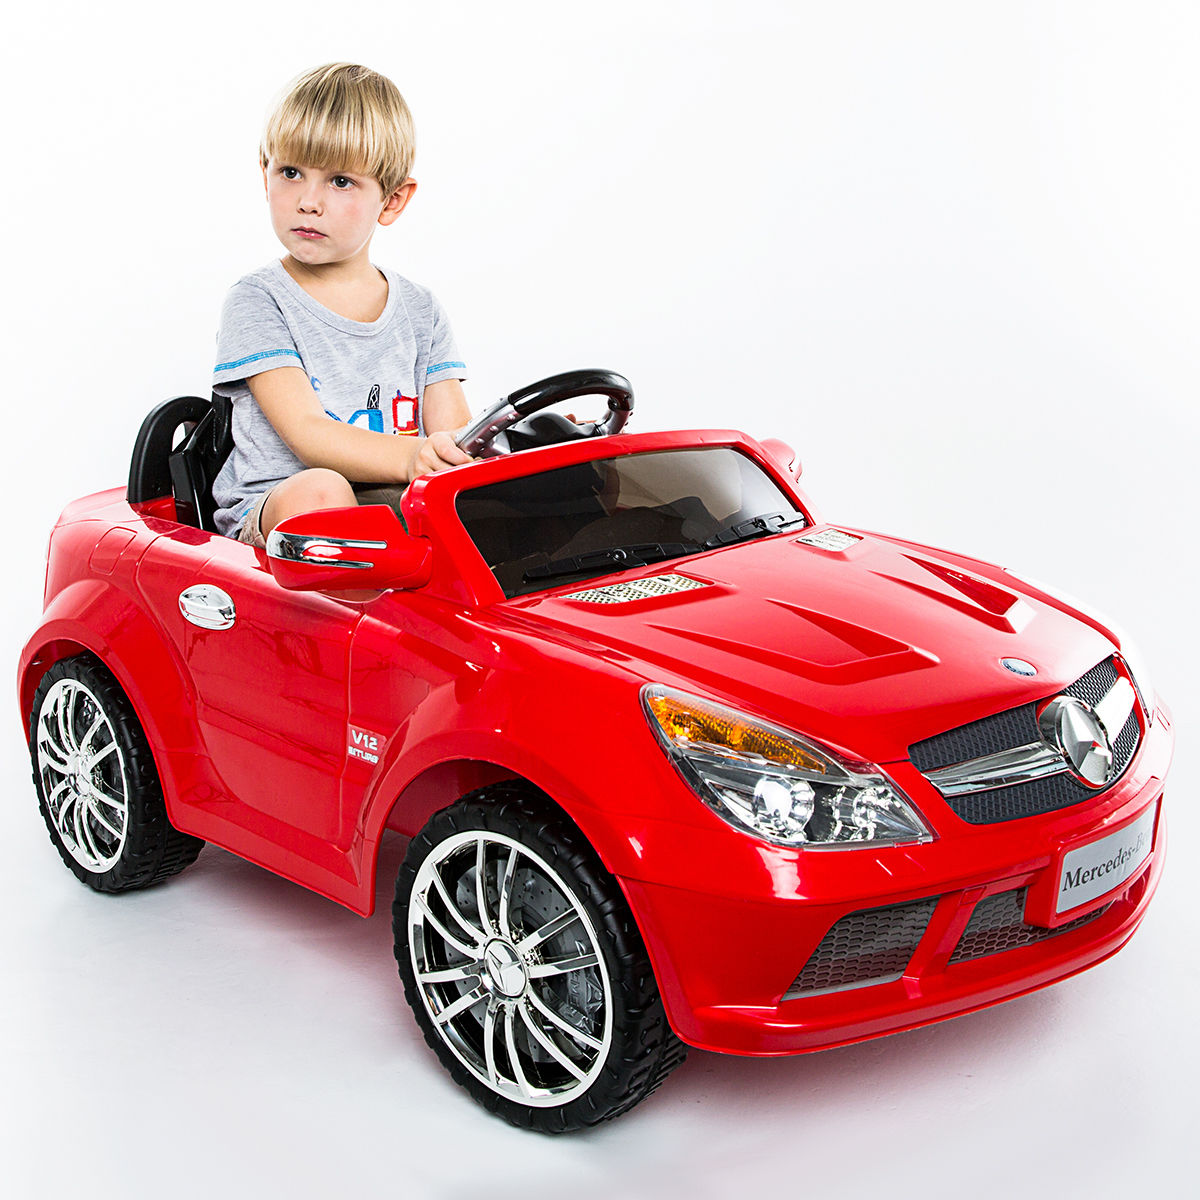 Costway 12V Mercedes-Benz SL65 Electric Kids Ride On Car Music RC Remote Control Red